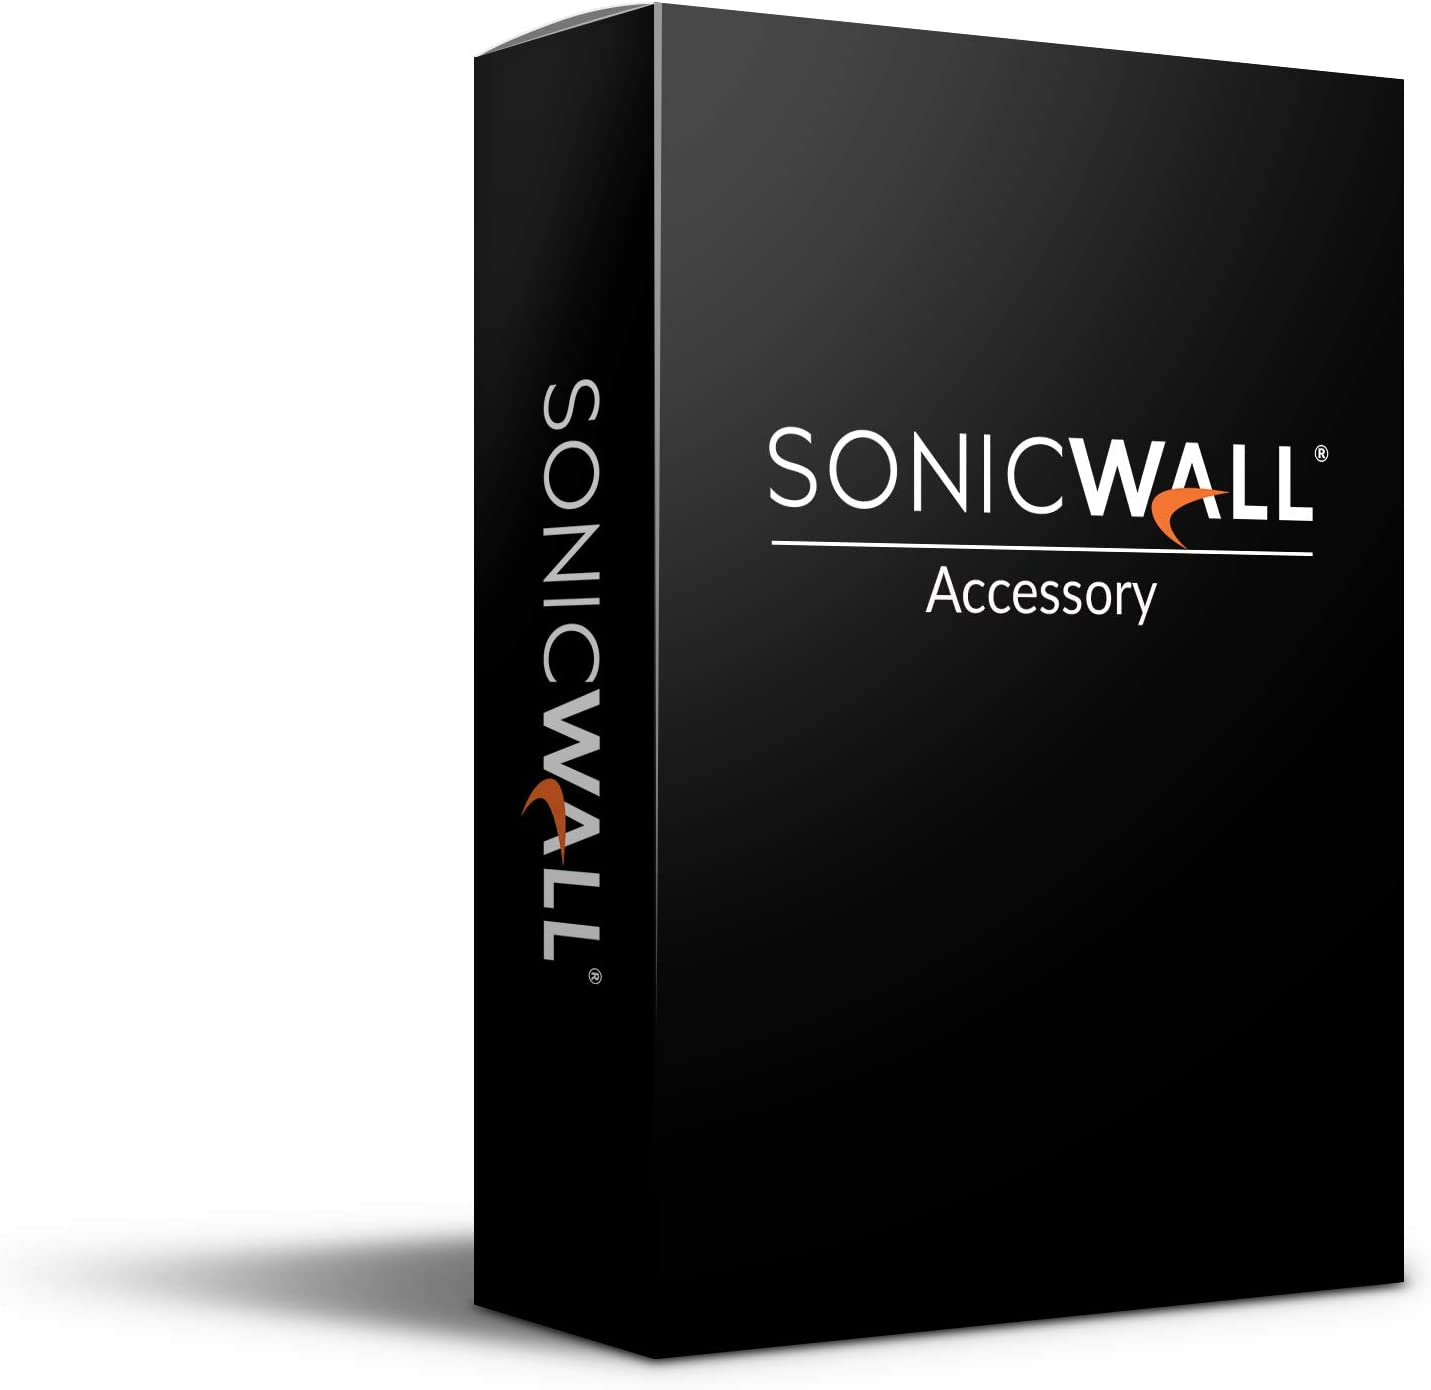 Dell Sonicwall 01-SSC-0225 Rack Mounting Kit for TZ600, High Availability